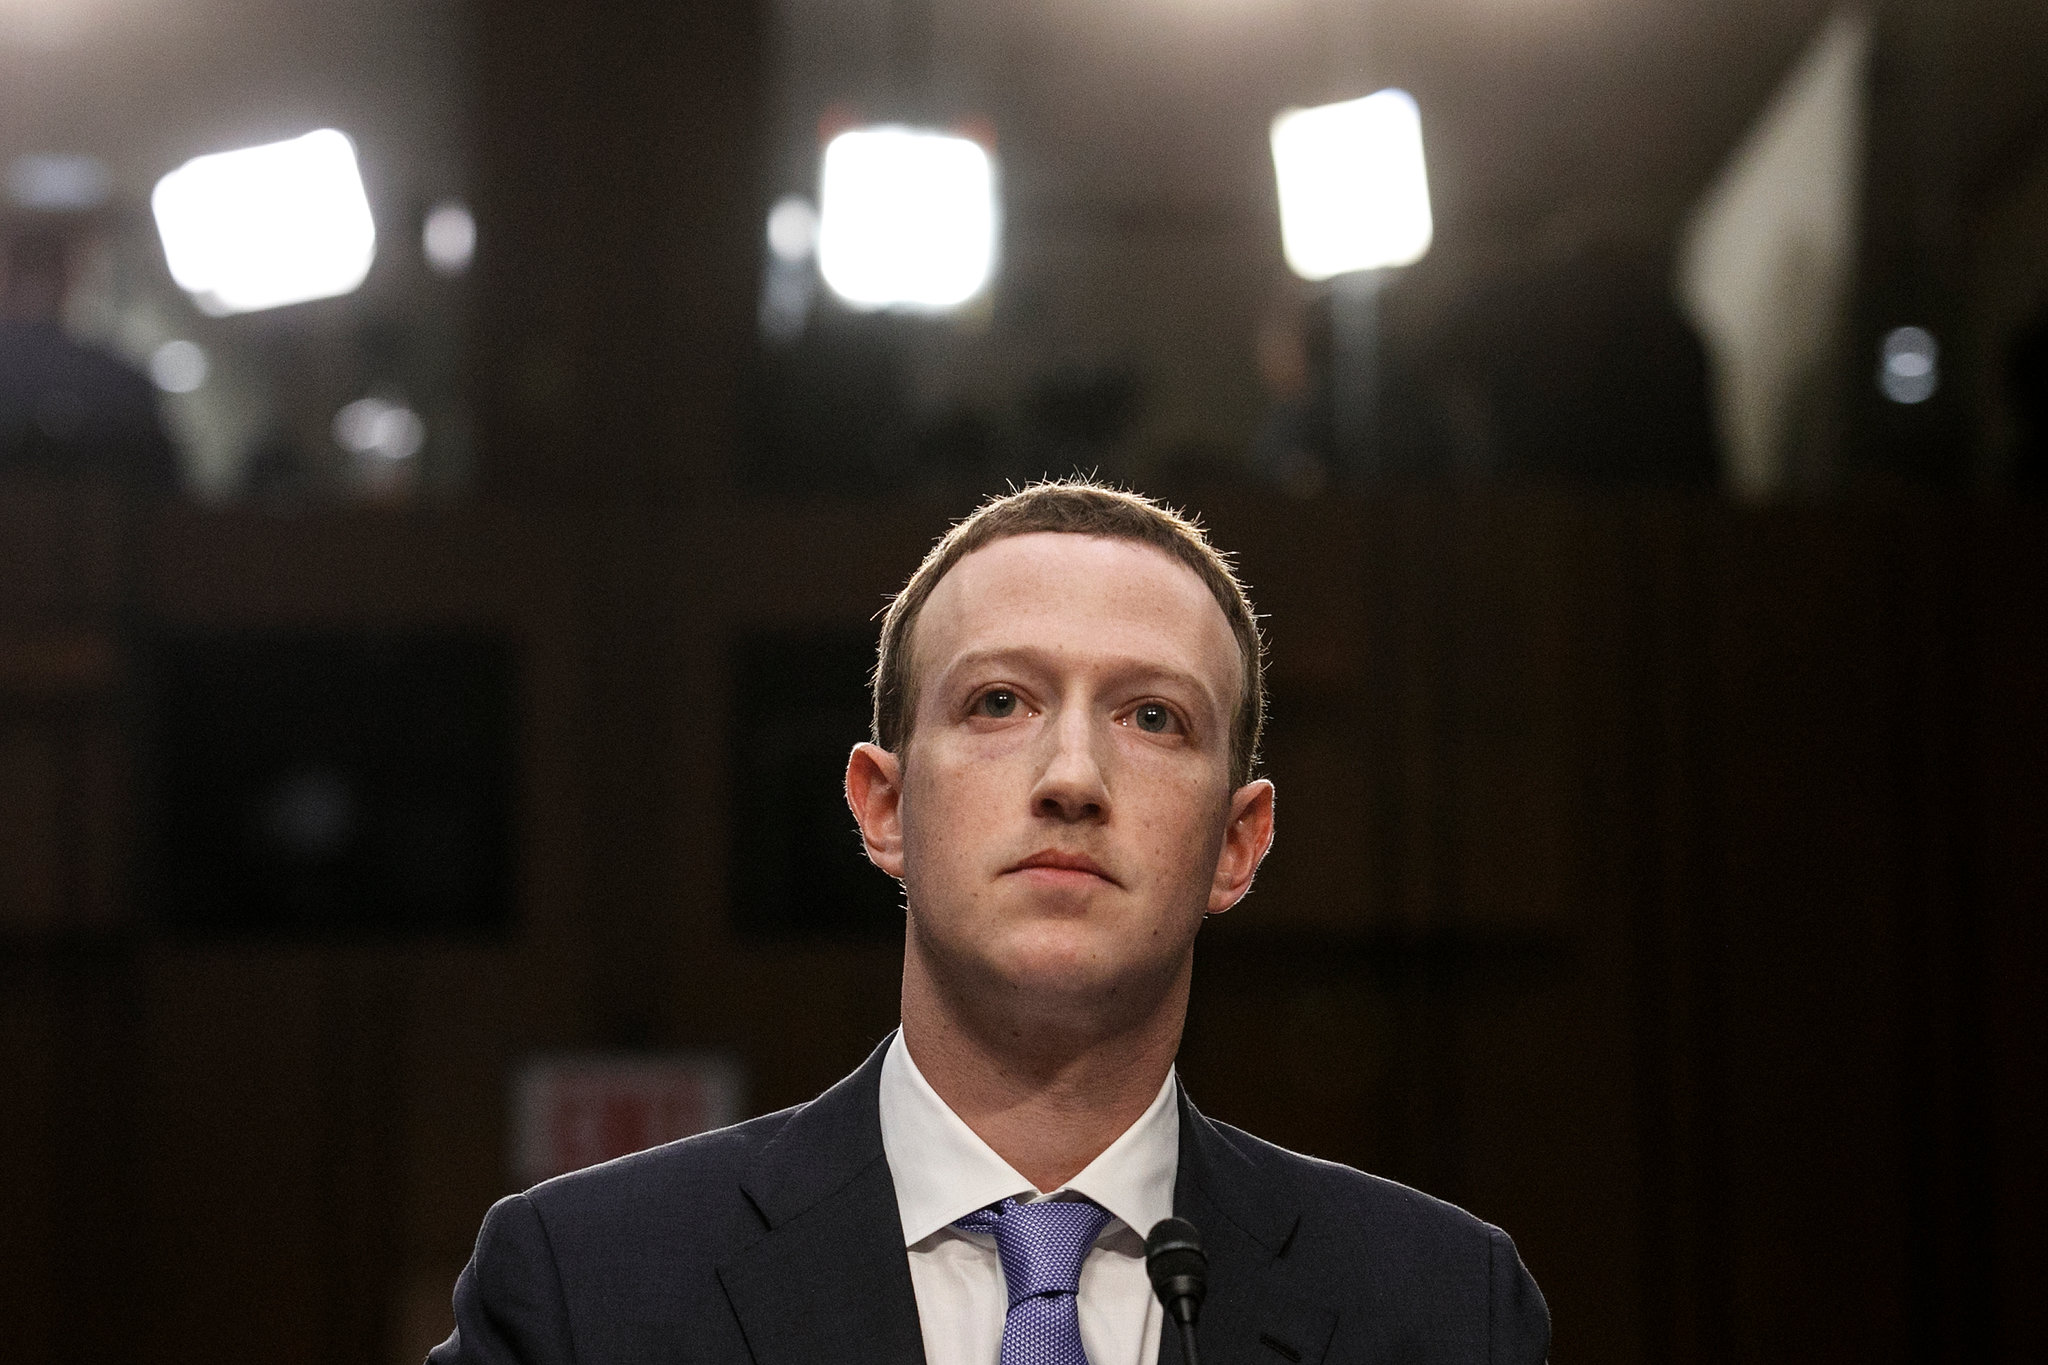 Breaking up Facebook and other applications is not a good idea- Mark Zuckerberg